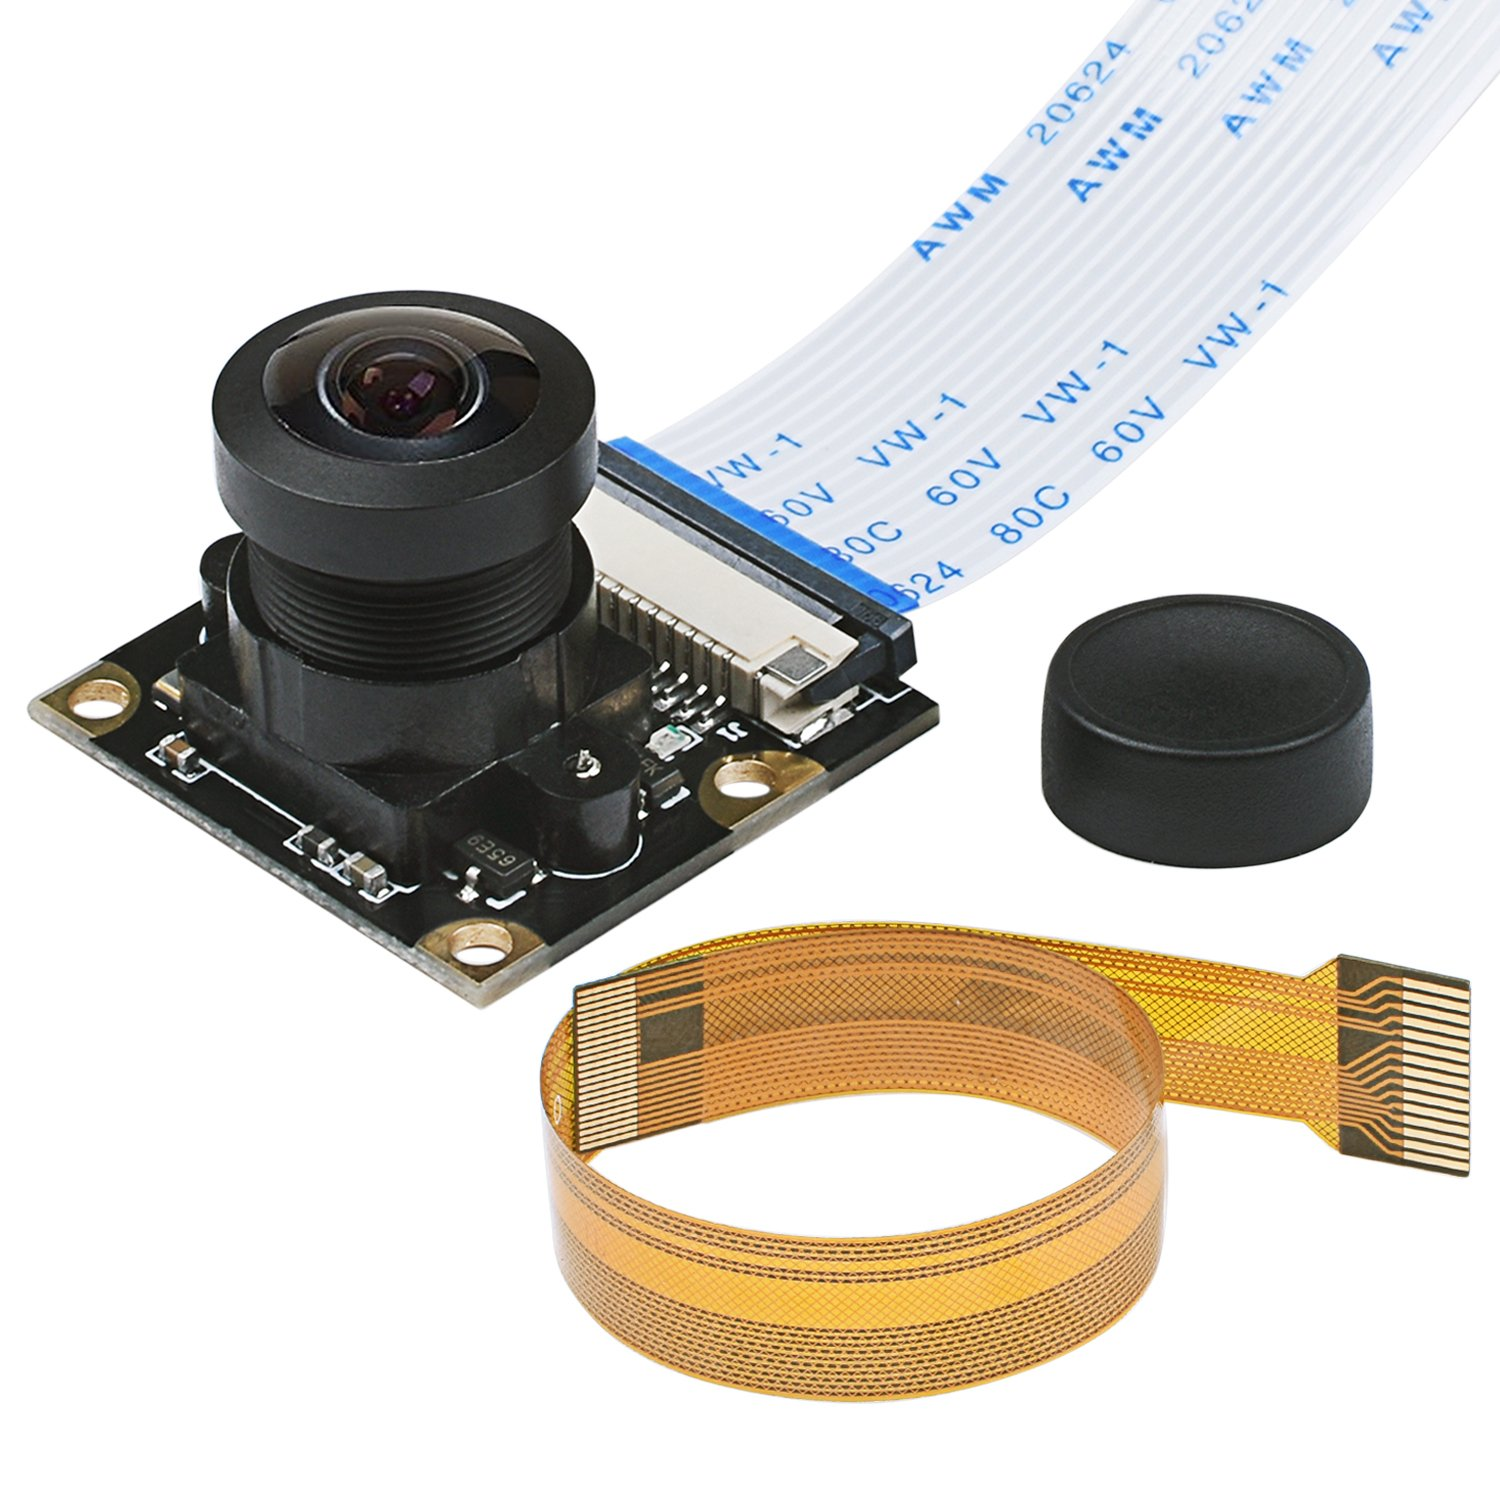 Miuzei Raspberry Pi Camera Module, Wide-Angel Fish-Eye Camera Lenses, OV5647 Sensor with Pi Zero Ribbon Cable & FPC Cable for Raspberry Pi 3B+, 3B, 2B, Zero by Miuzei